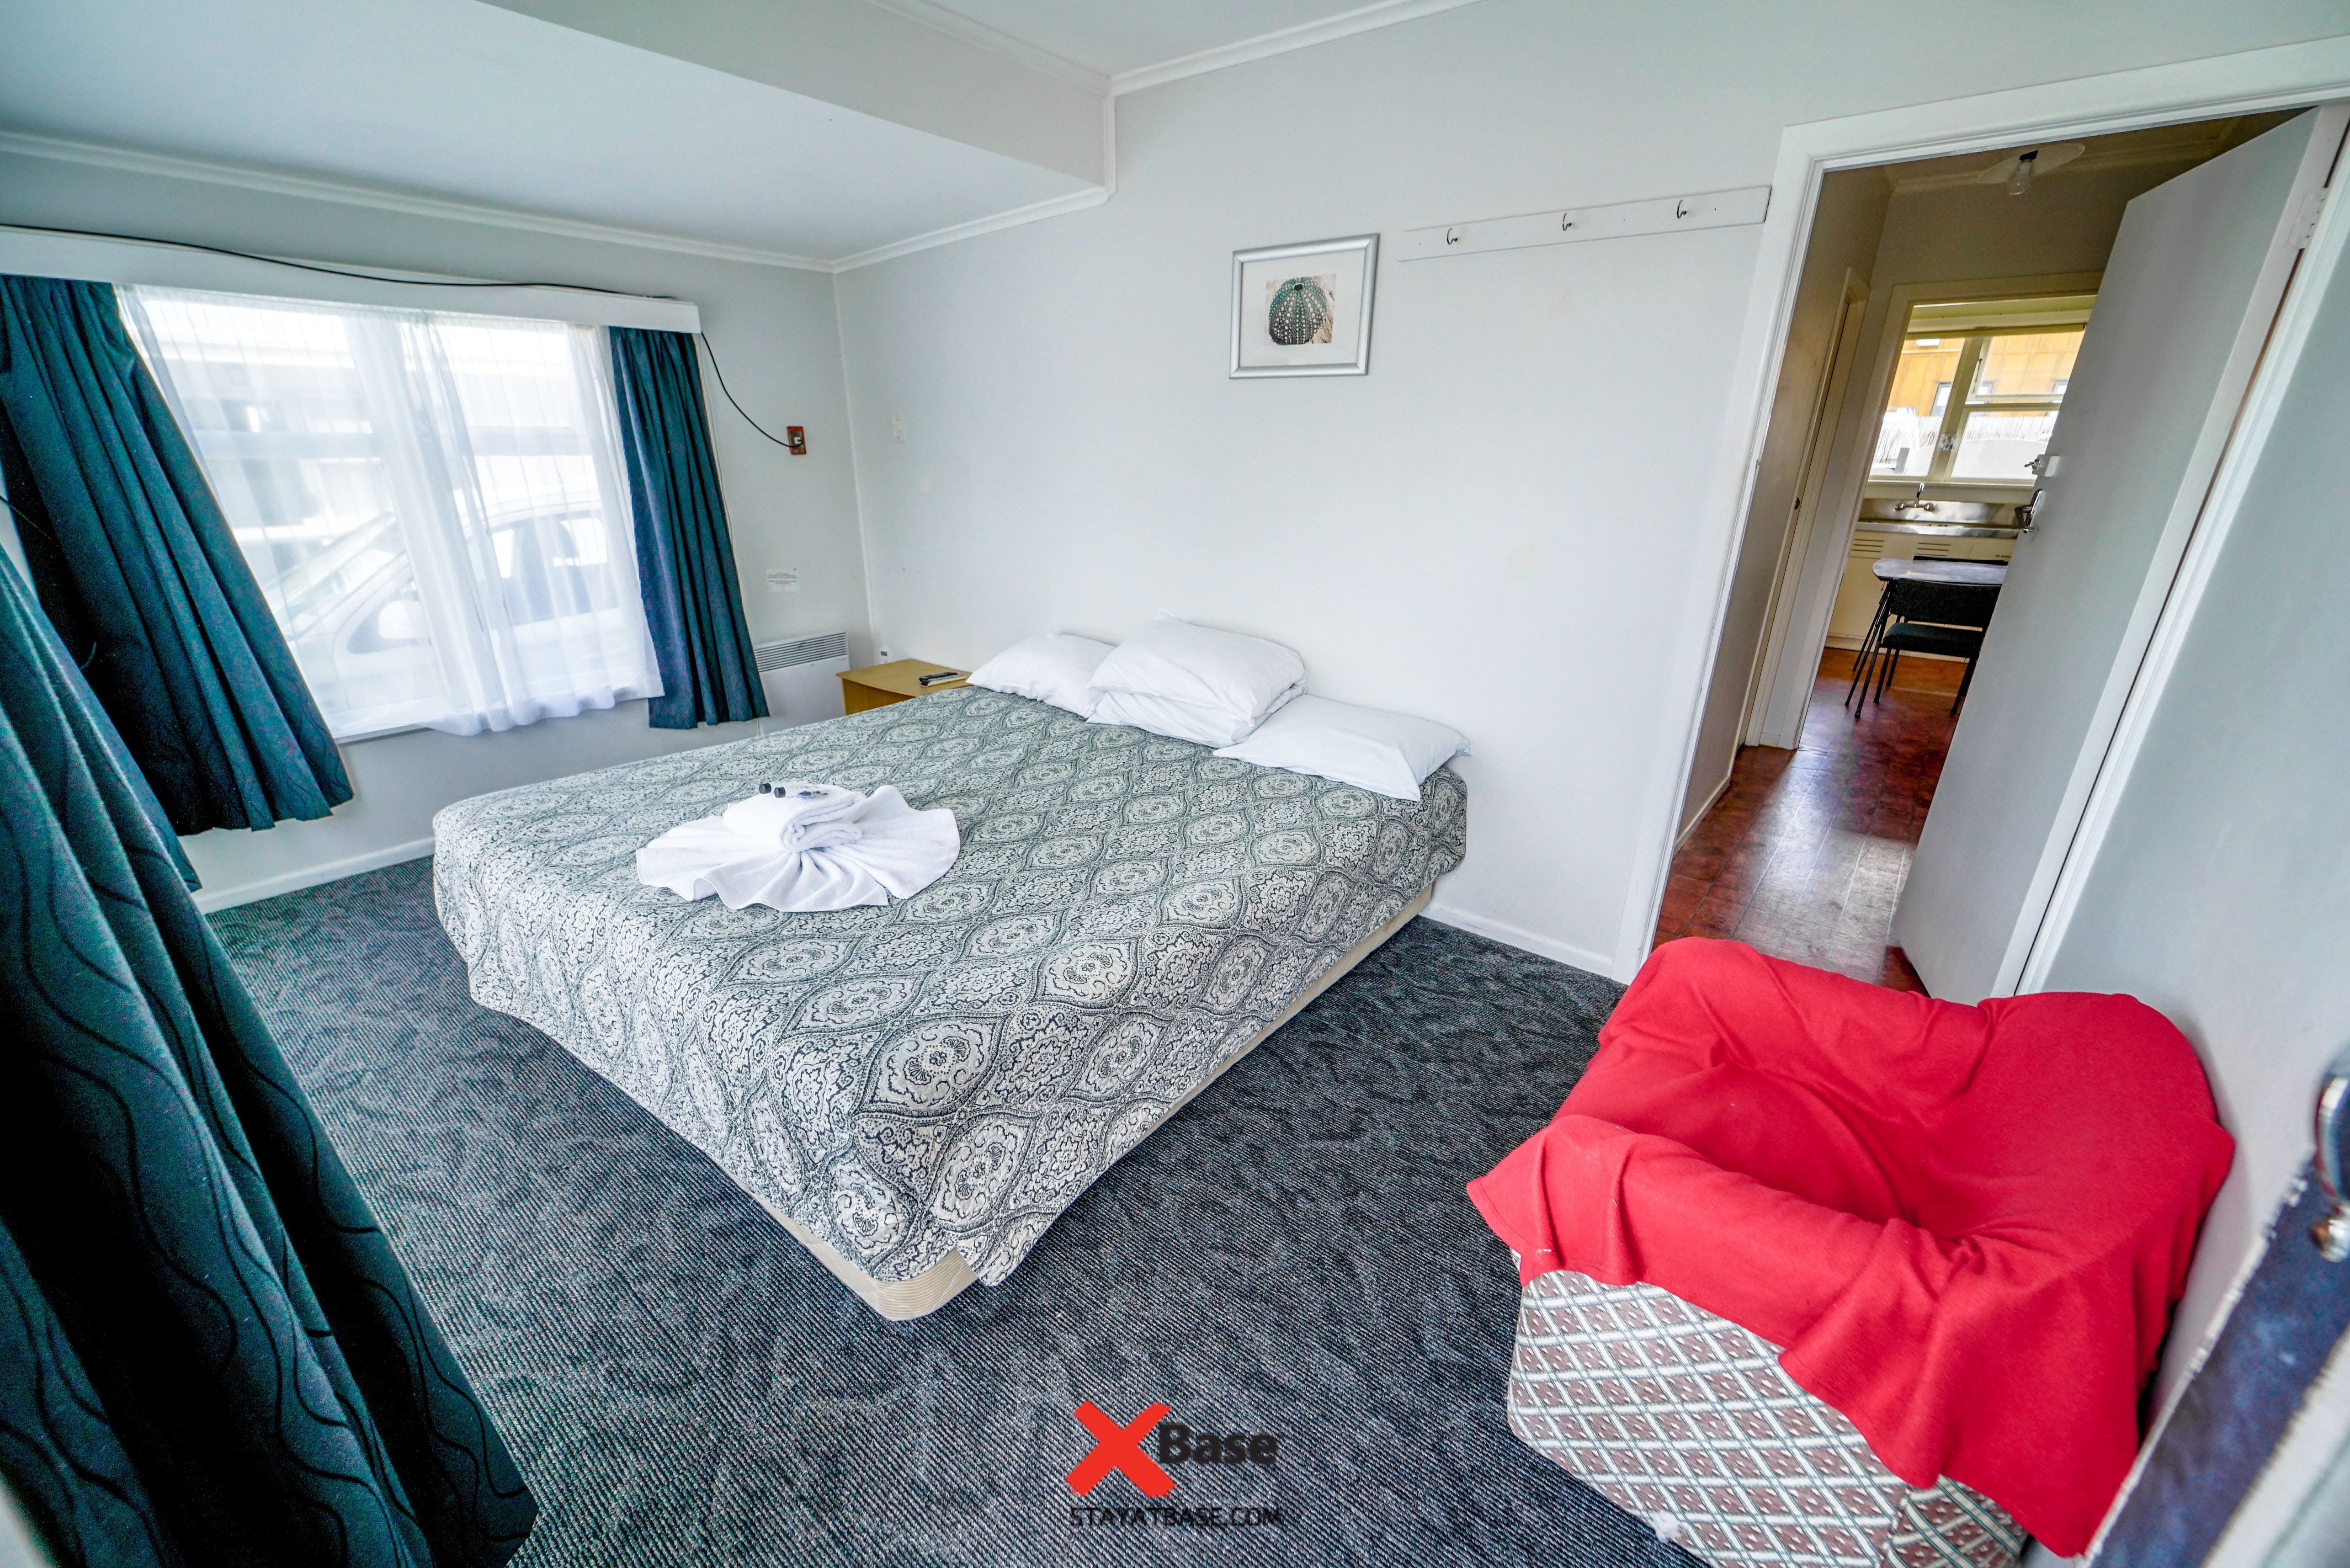 private accommodation in paihia base hostel